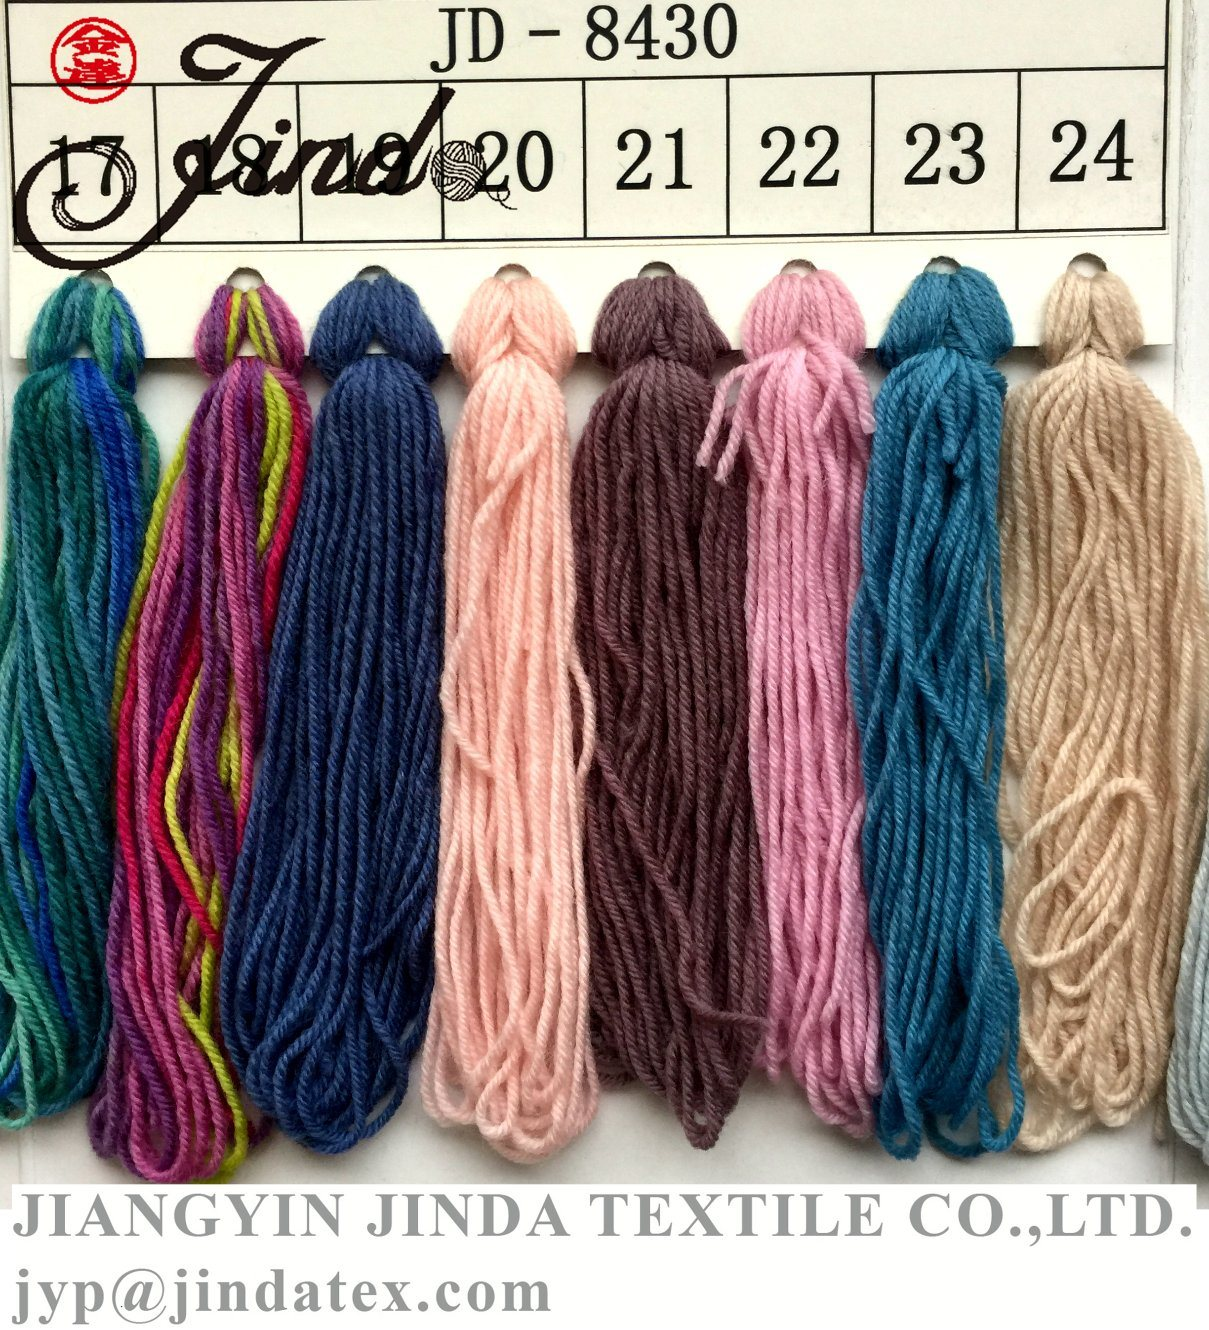 Handknitting Yarn Merino Wool Jd8430